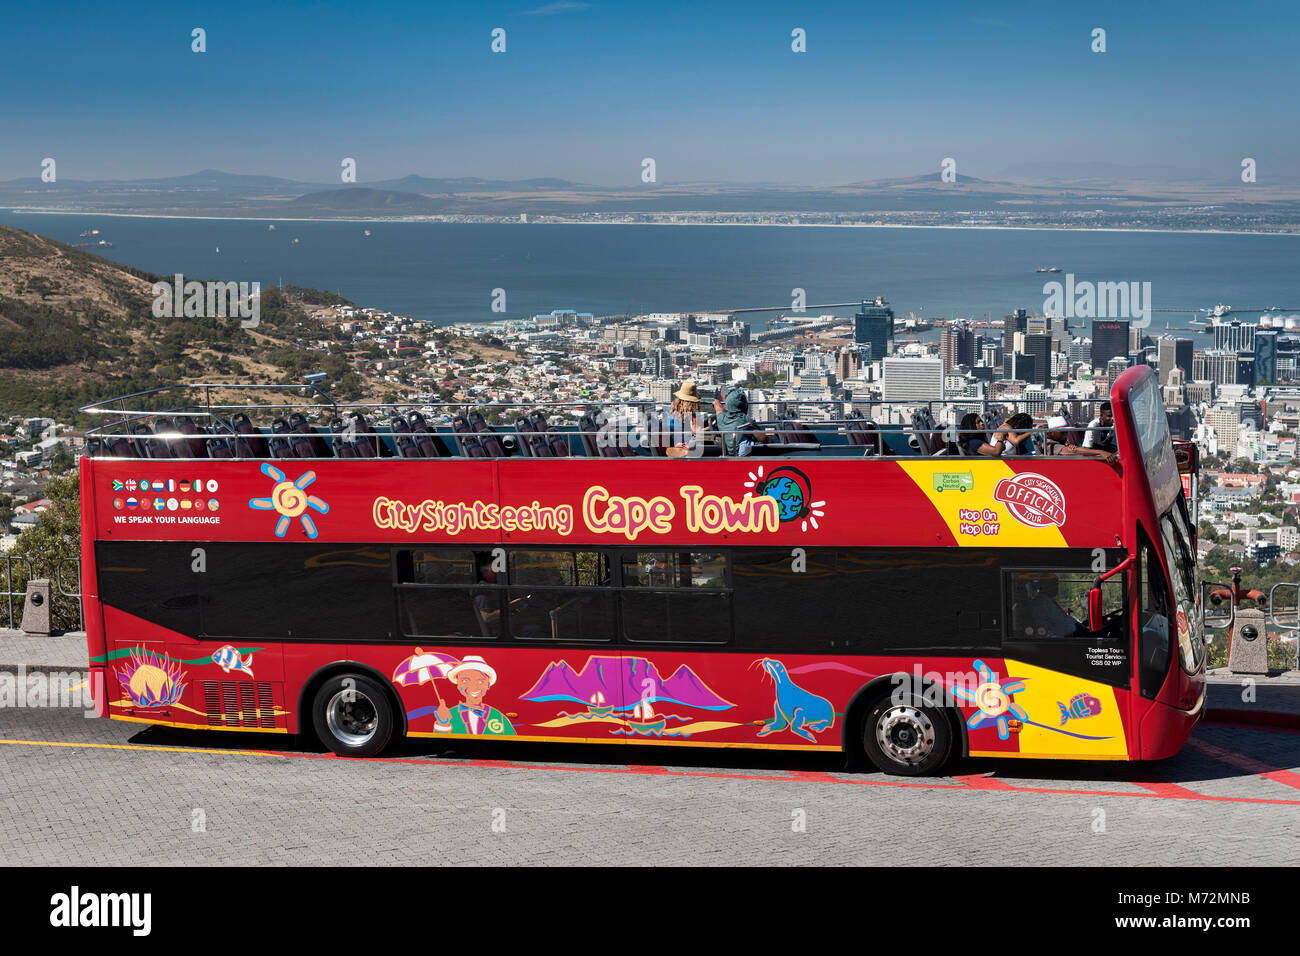 Red sightseeing bus in Cape Town. - Stock Image